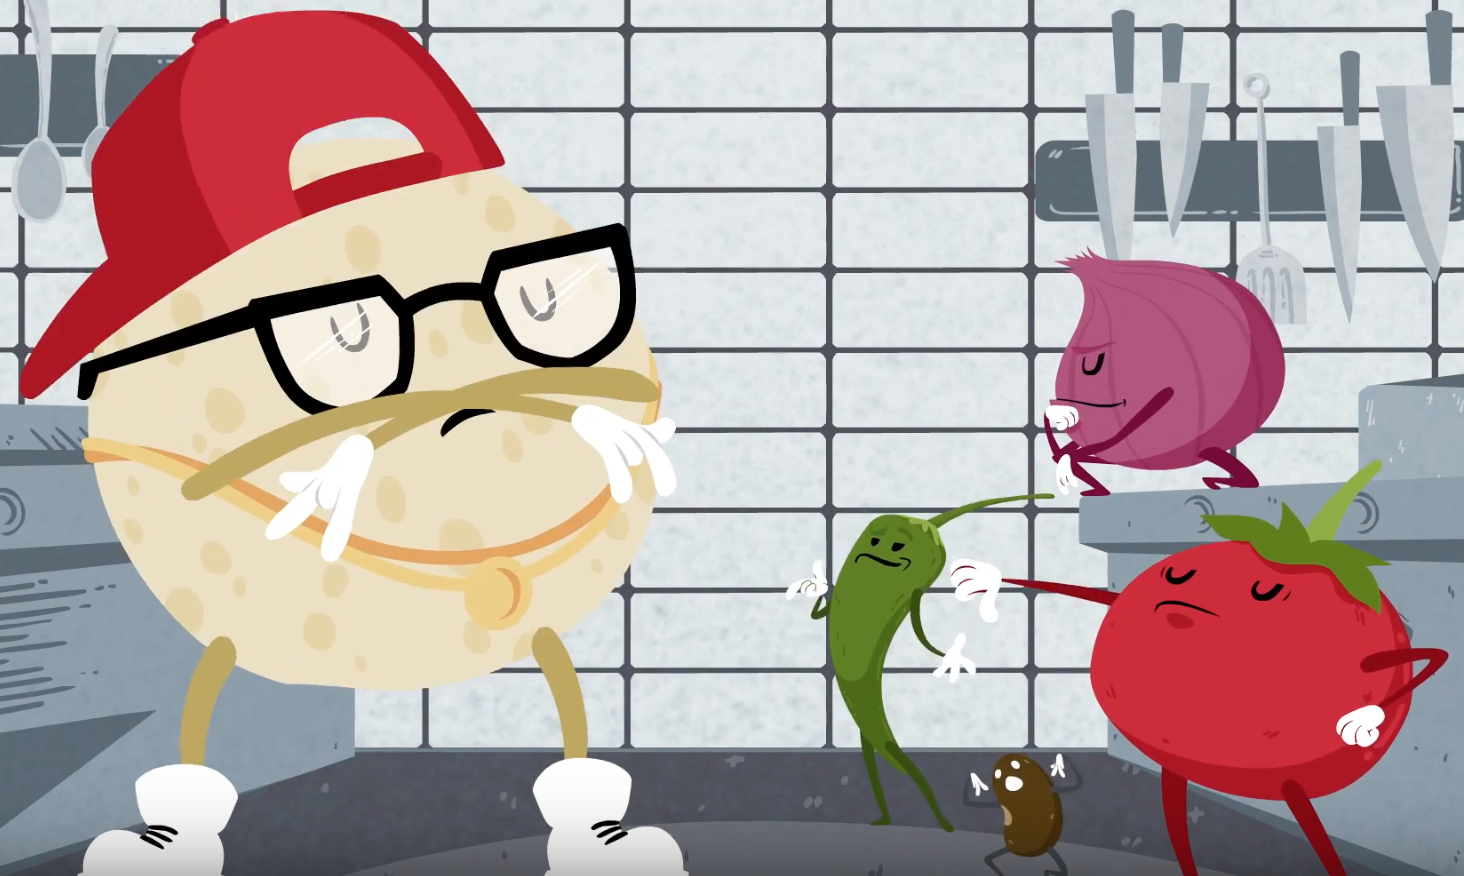 Chipotle has a new mascot that raps, and we'll let you decide how you feel about it